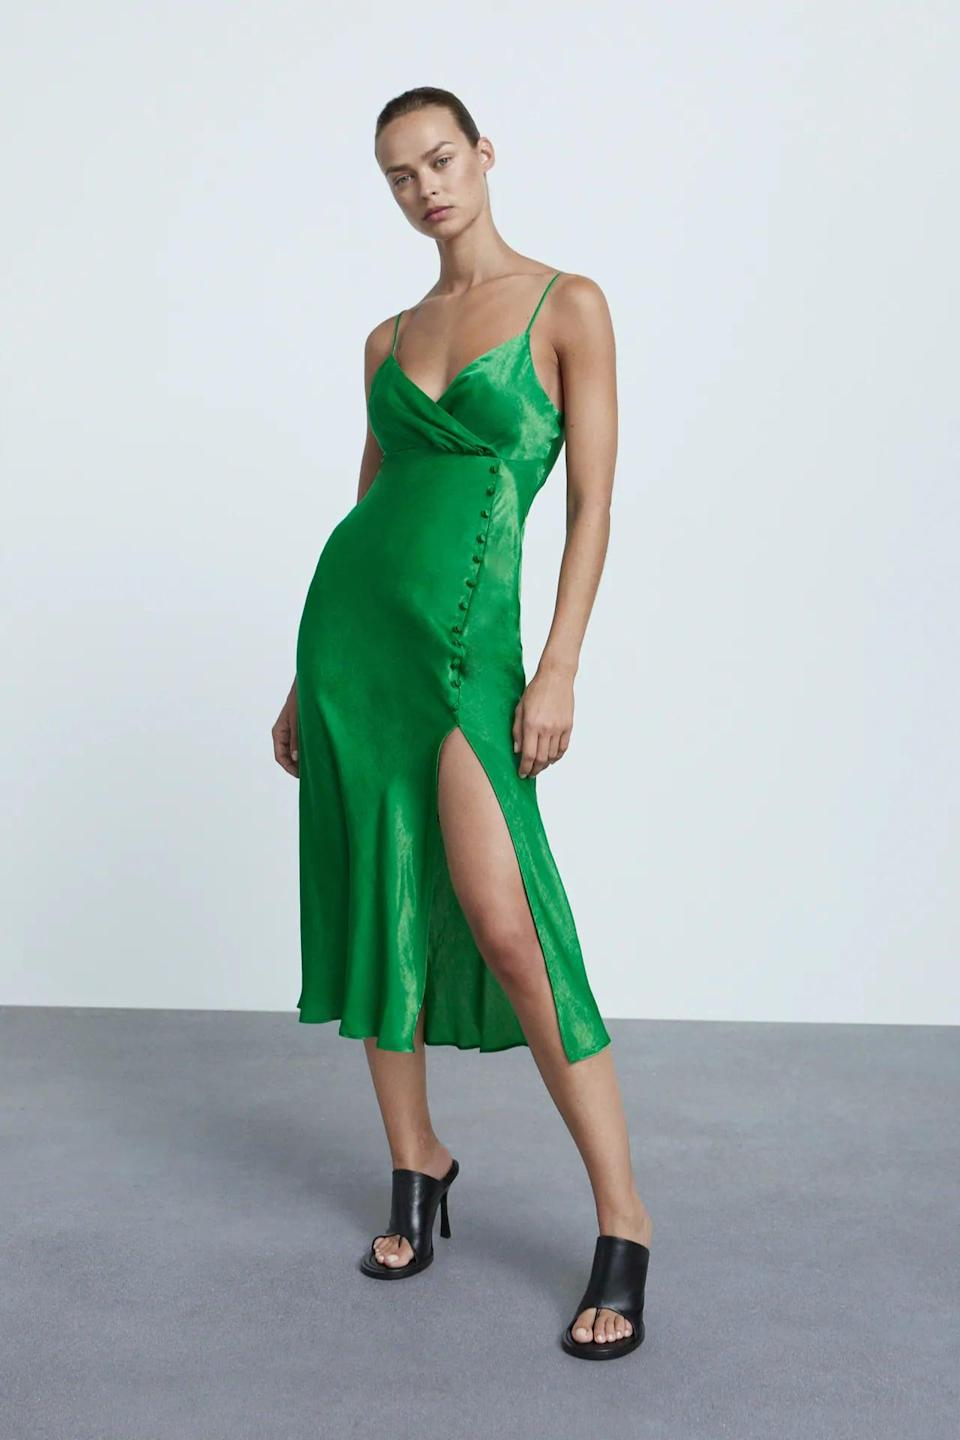 <p>This <span>Zara Buttoned Slip Dress</span> ($46) is striking and sexy. It comes in a few colors, but we love the green for fall and winter.</p>